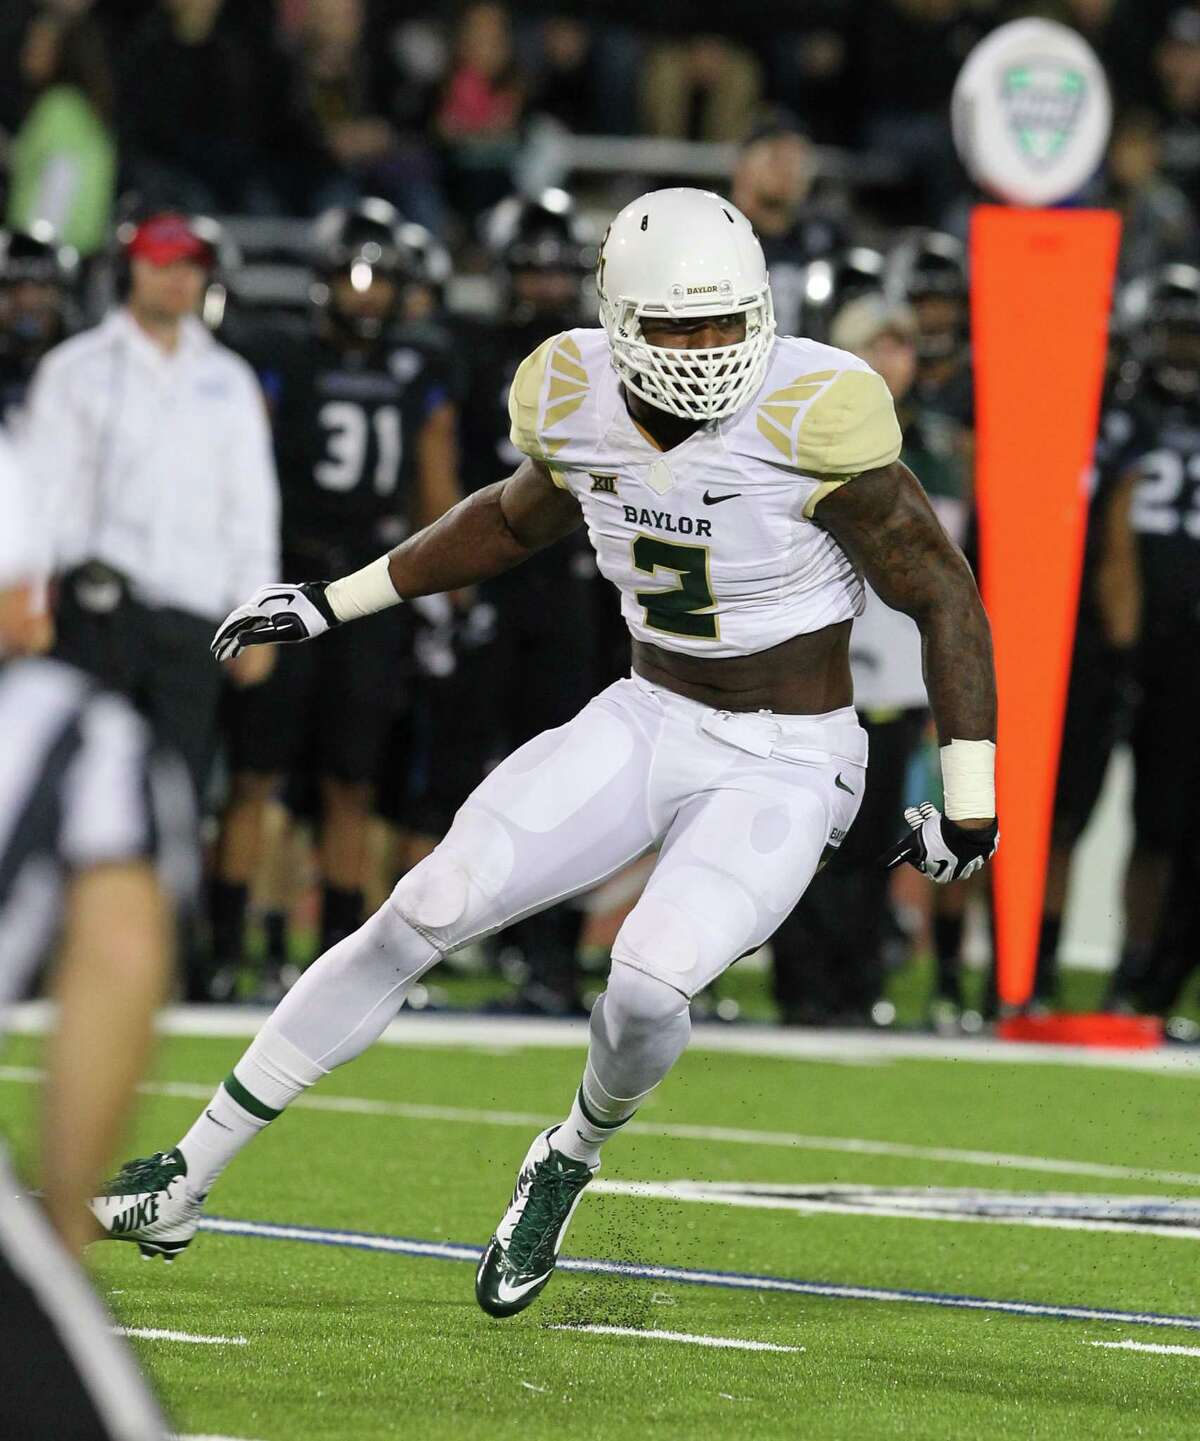 Baylor defensive end Shawn Oakman (2) breaks off the line against Buffalo during the first half of an NCAA college football game on Friday, Sept. 12, 2014, in Amherst, N.Y.